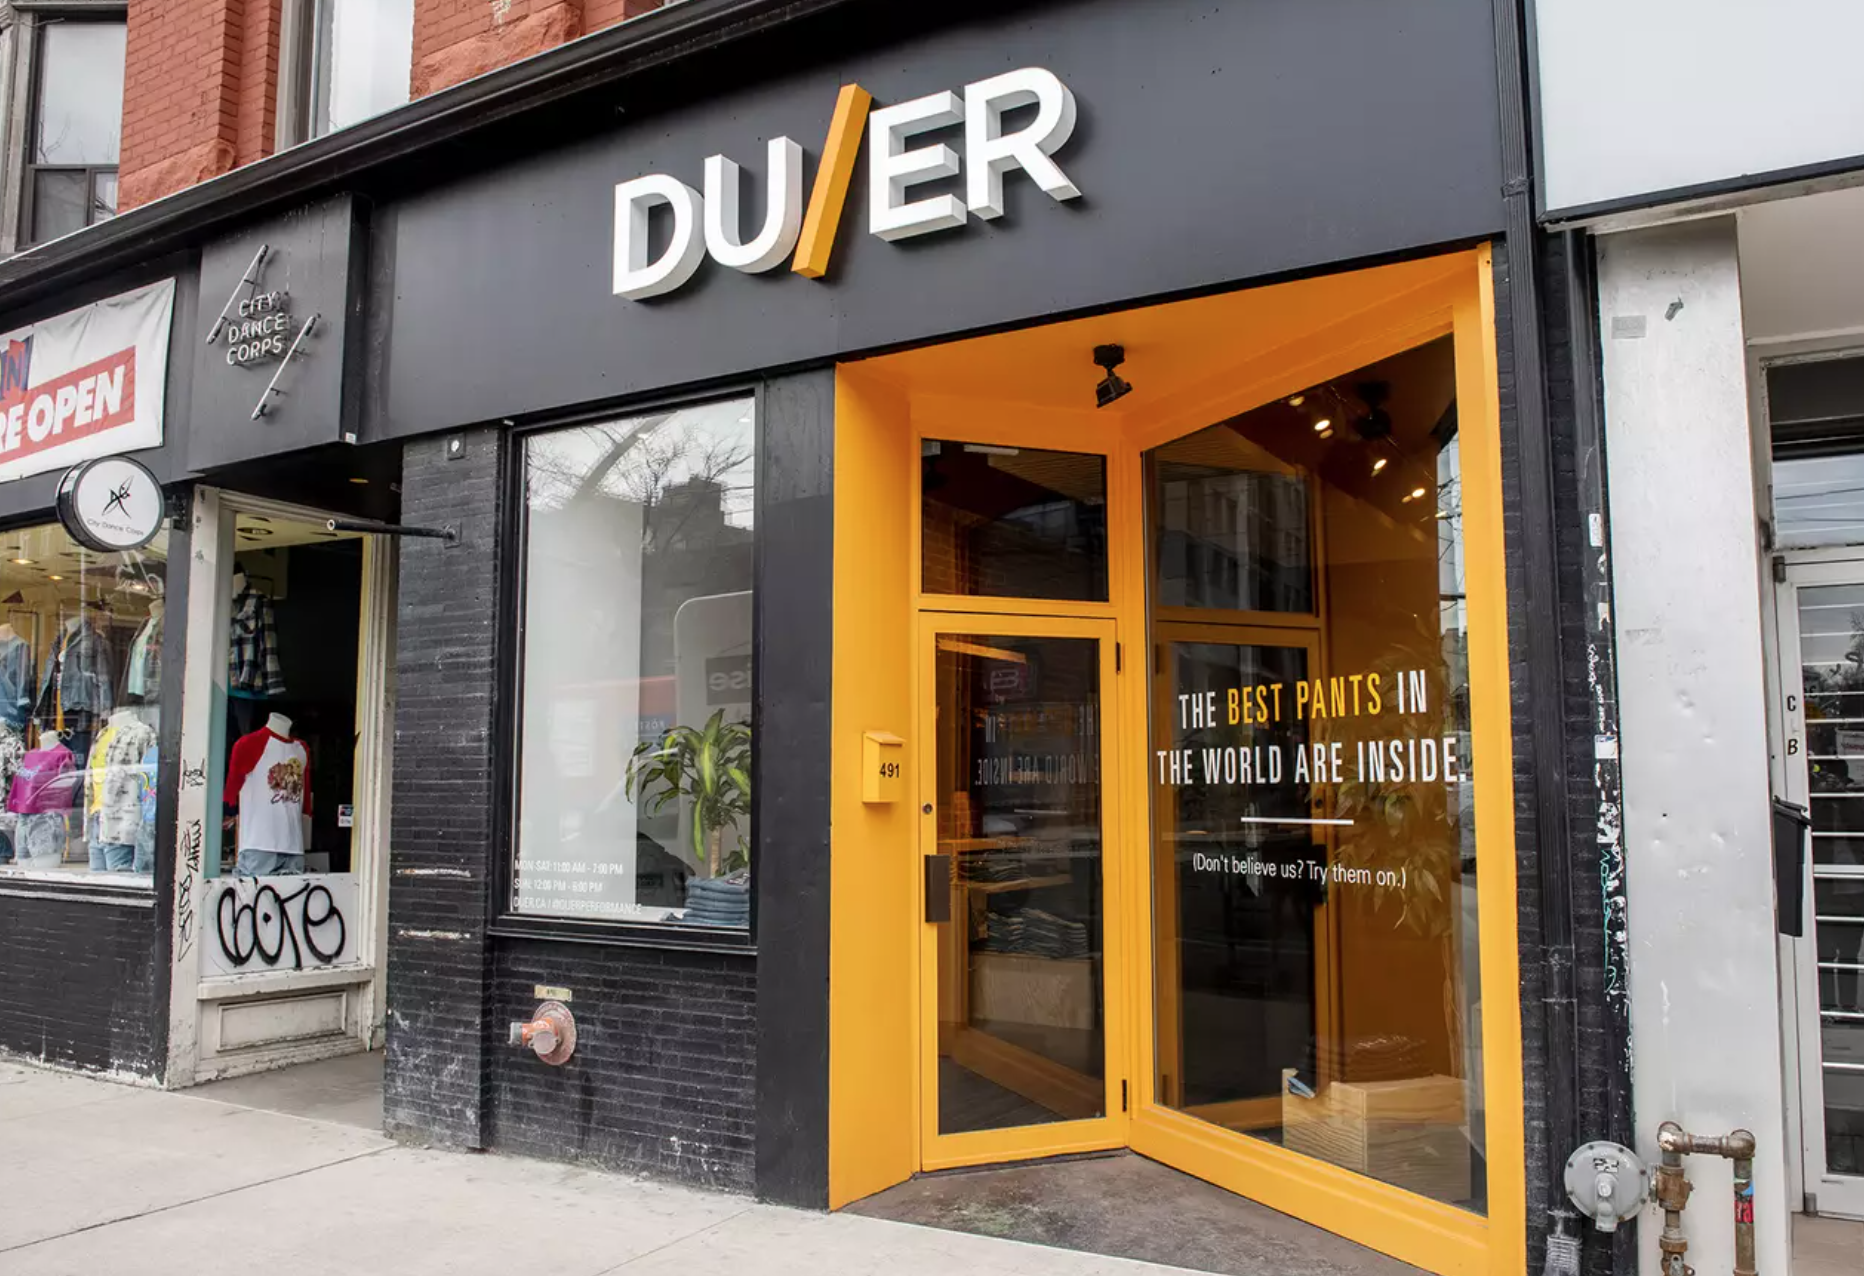 duer location in toronto. photo: duer